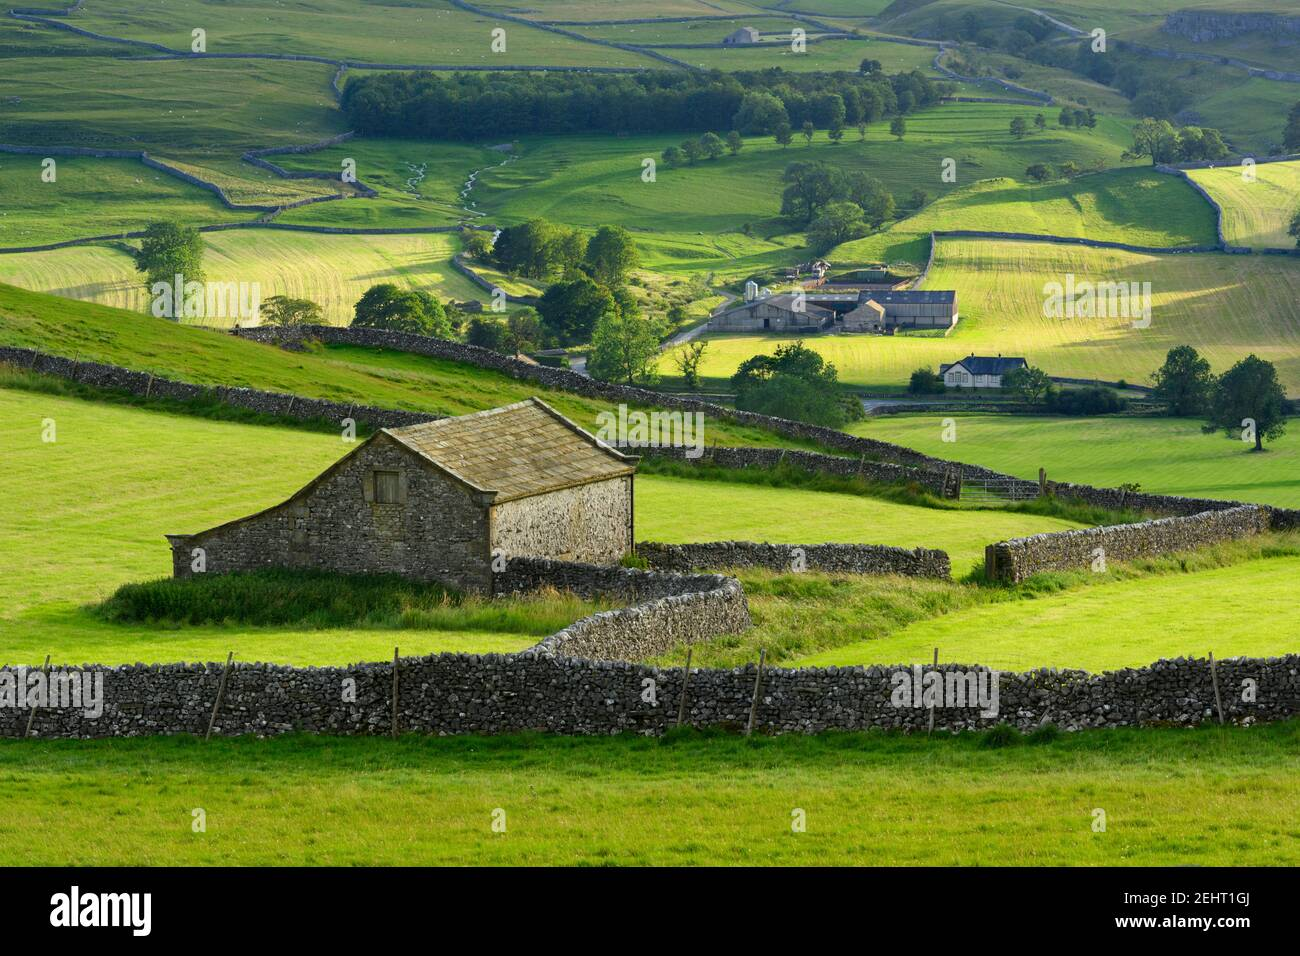 Scenic Wharfedale countryside (valley, hillsides, field barn, drystone walls, green farmland pastures, rolling hills) - Yorkshire Dales, England, UK. Stock Photo